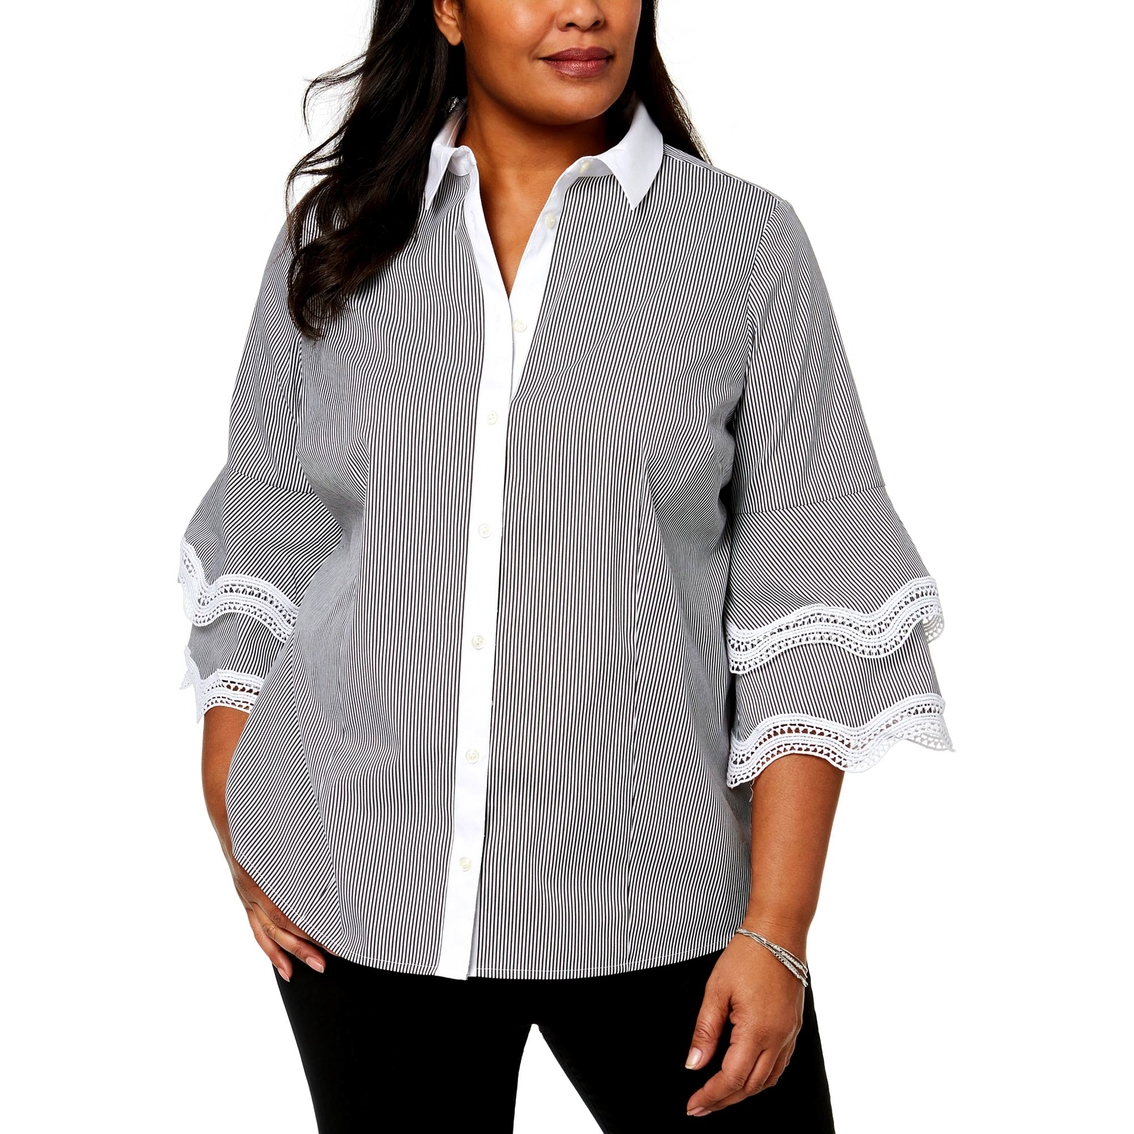 596a4128329 Charter Club Plus Size Tiered Sleeve Lace Trim Shirt